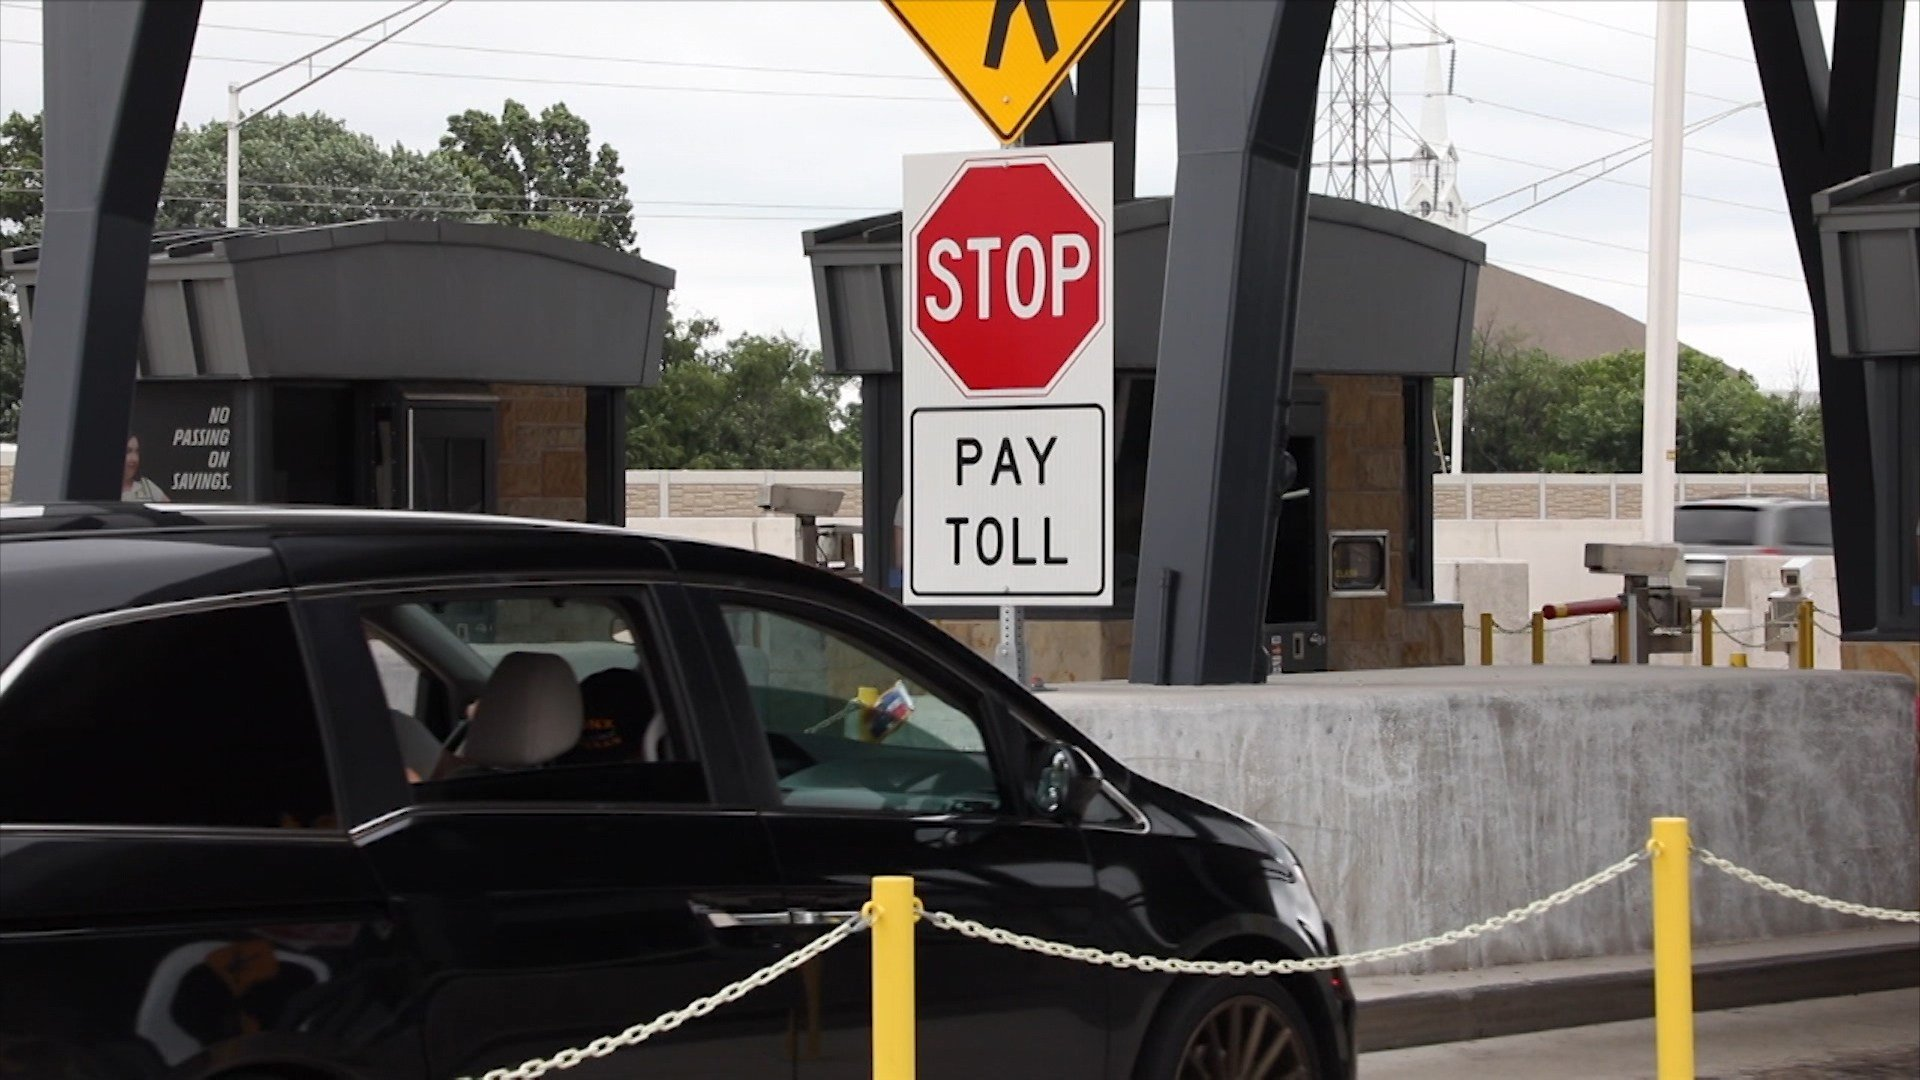 Turnpike issues warning to drivers with overdue toll violations